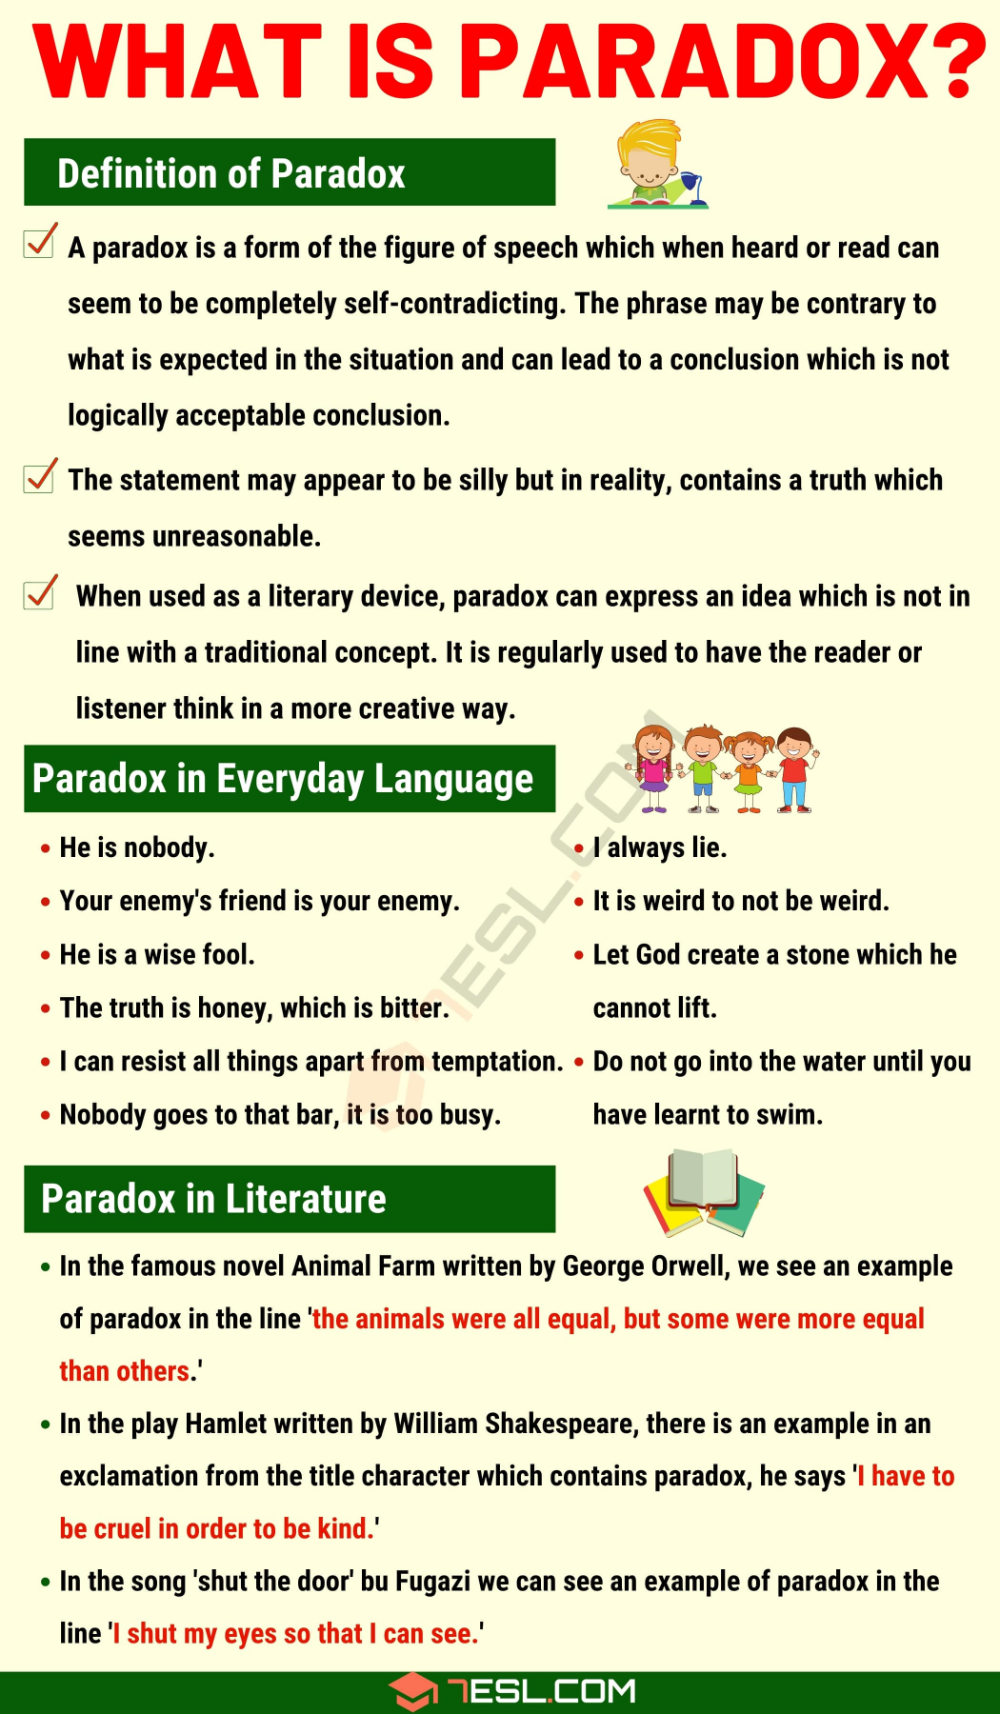 Paradox Definition And Examples Of Paradox In Speech And Literature 7 E S L In 2020 English Writing Skills Essay Writing Skills Learn English Words